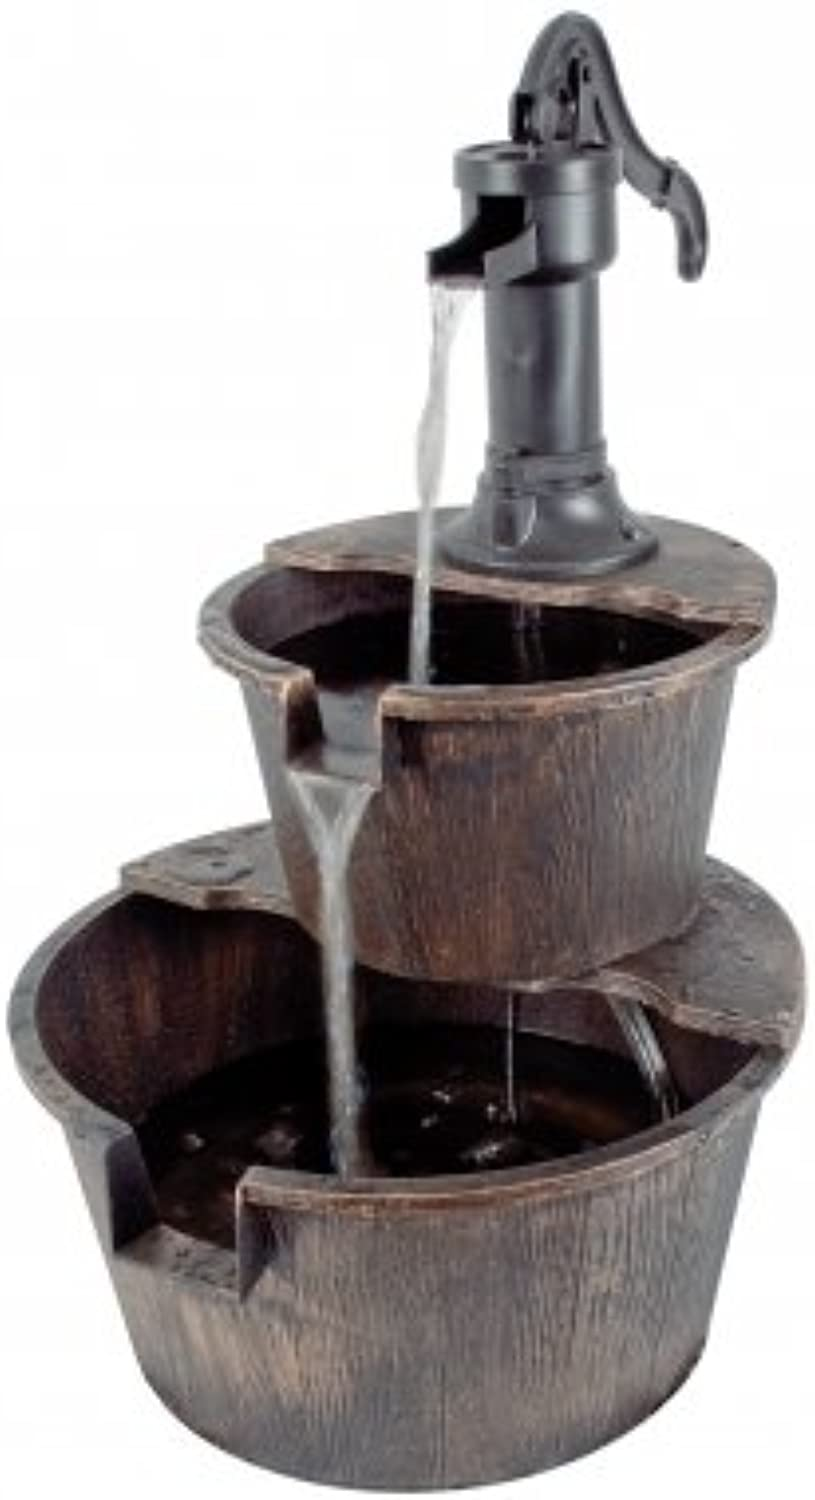 2 Tier Barrel Solar Powered Water Feature with Traditional Hand Pump